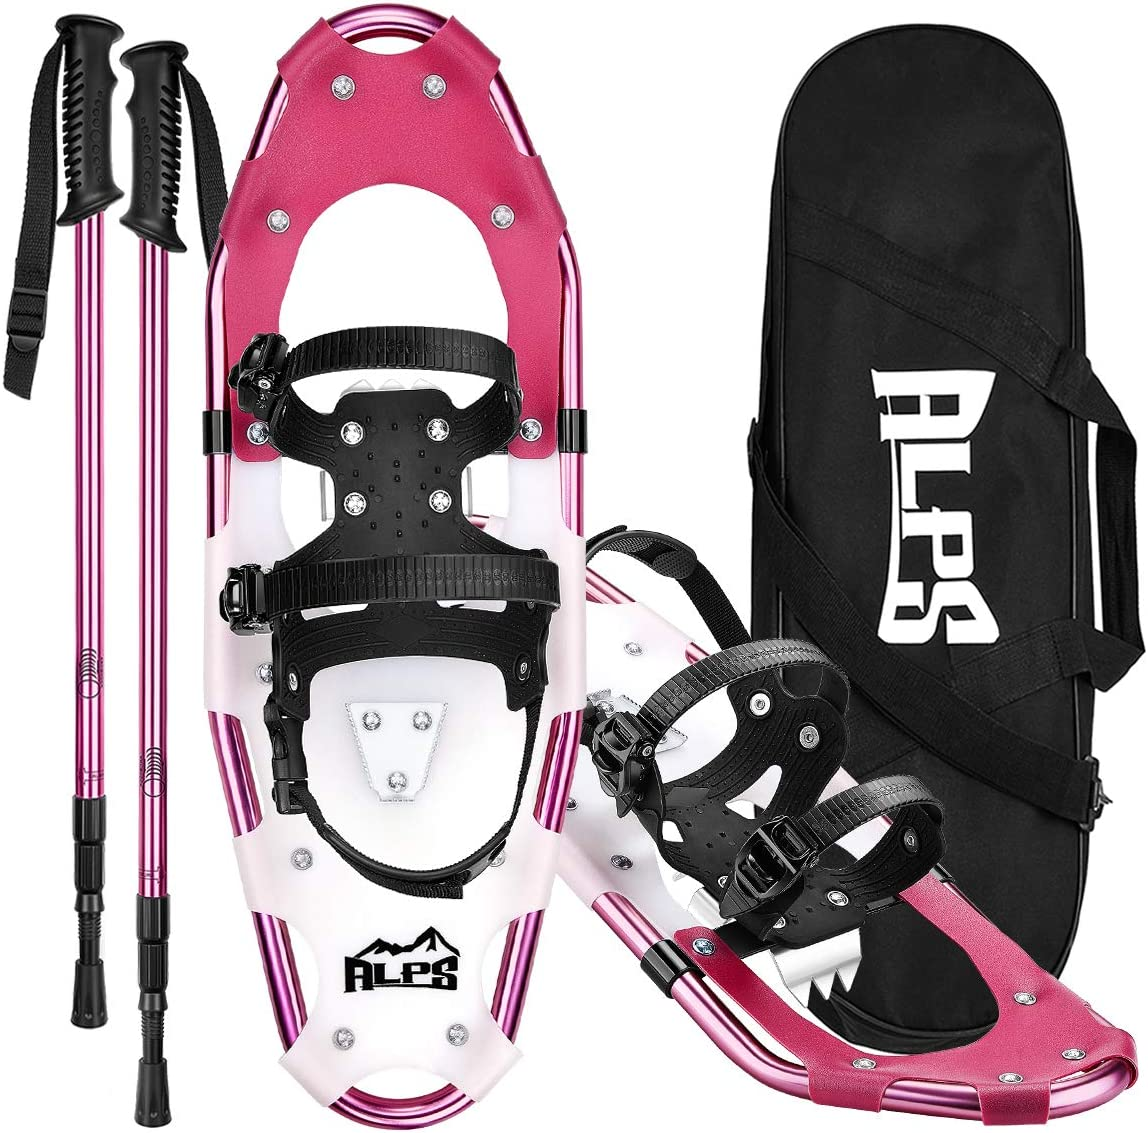 ALPS Lightweight Snowshoes Set for Women,Girls Trekking Poles,Carrying Tote 21